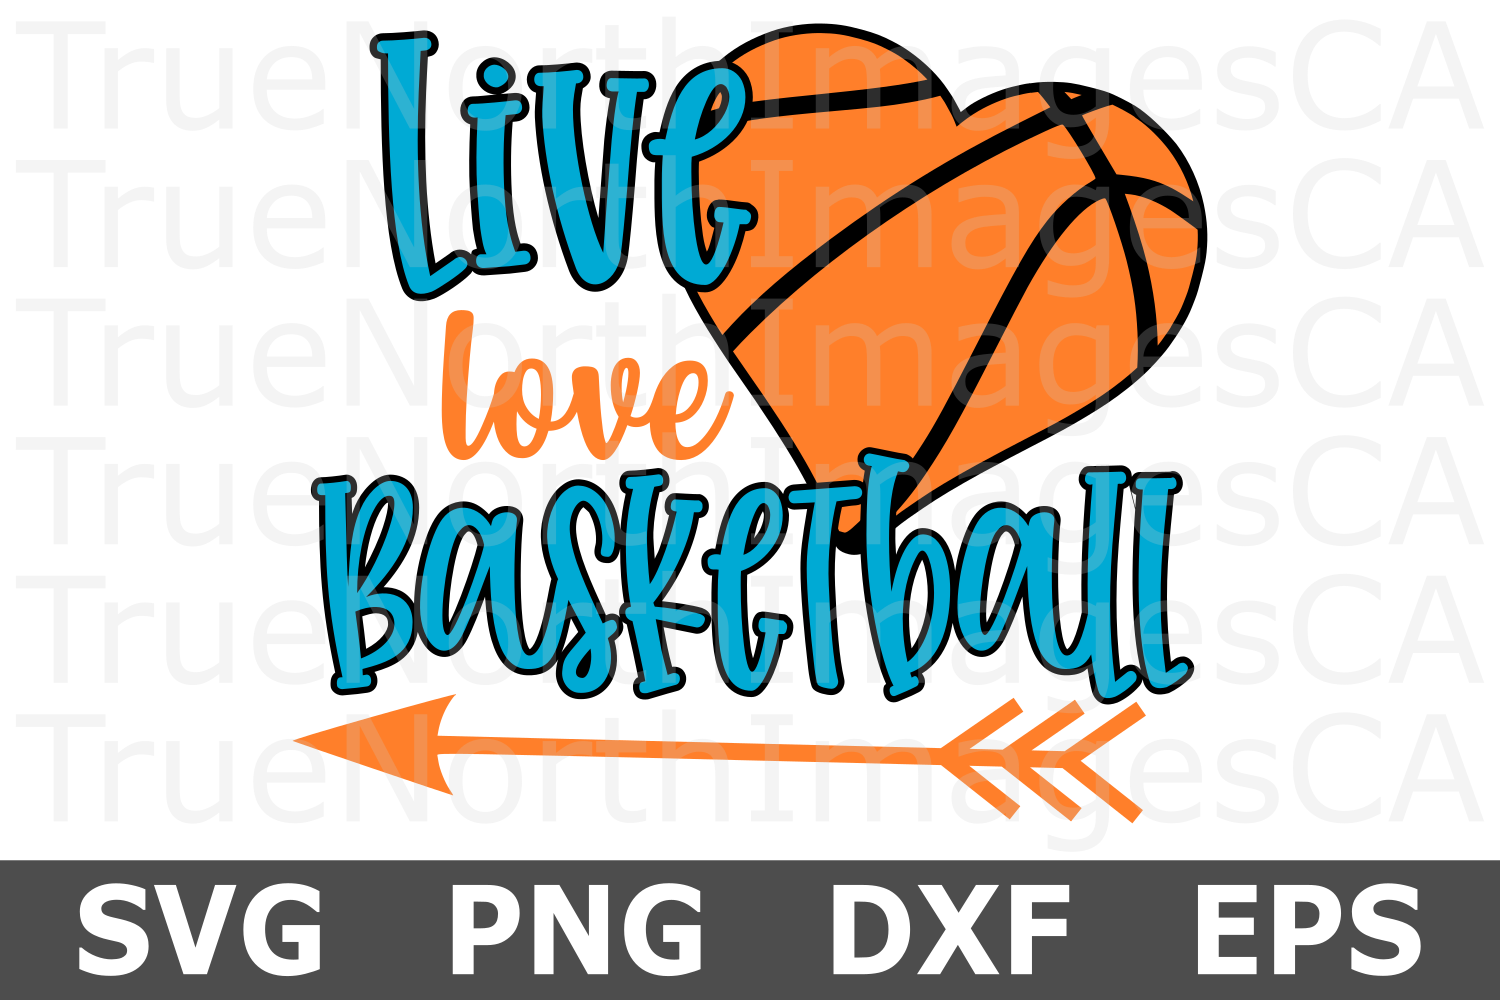 Live Love Basketball Heart - A Sports SVG Cut File example image 2